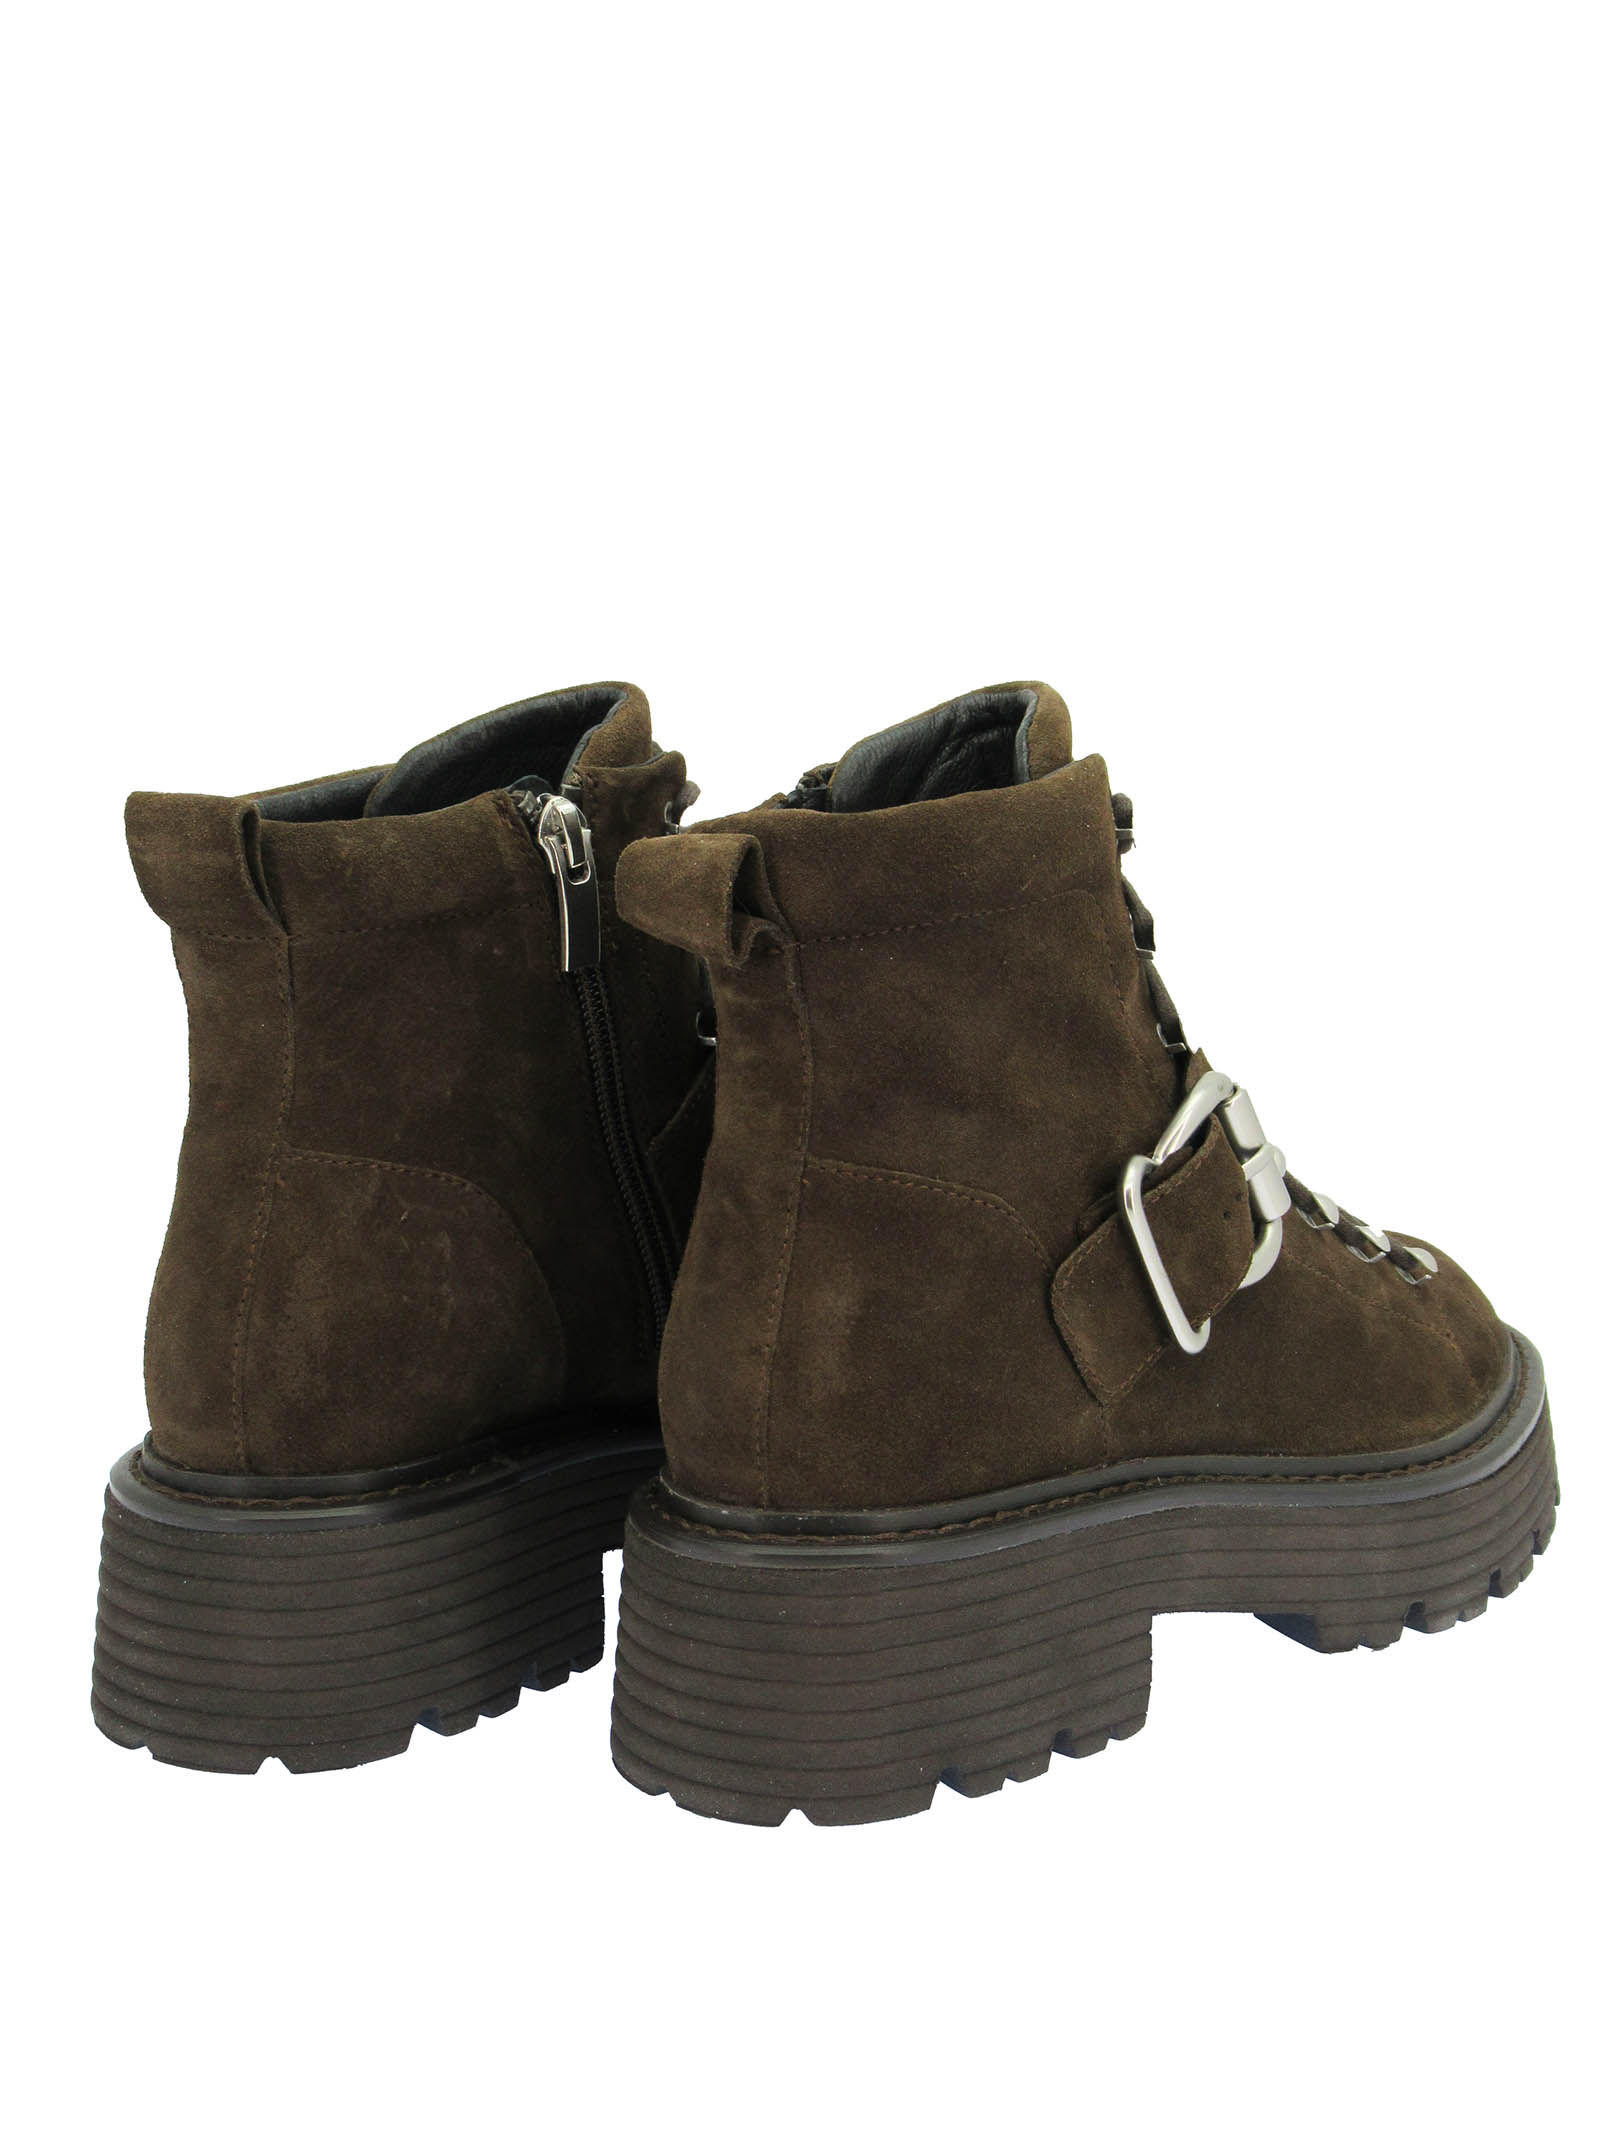 Women's Shoes Laced Ankle Boots in Brown Suede with Trekking Lacing and Tank Sole Bruno Premi   Ankle Boots   BC3702X014